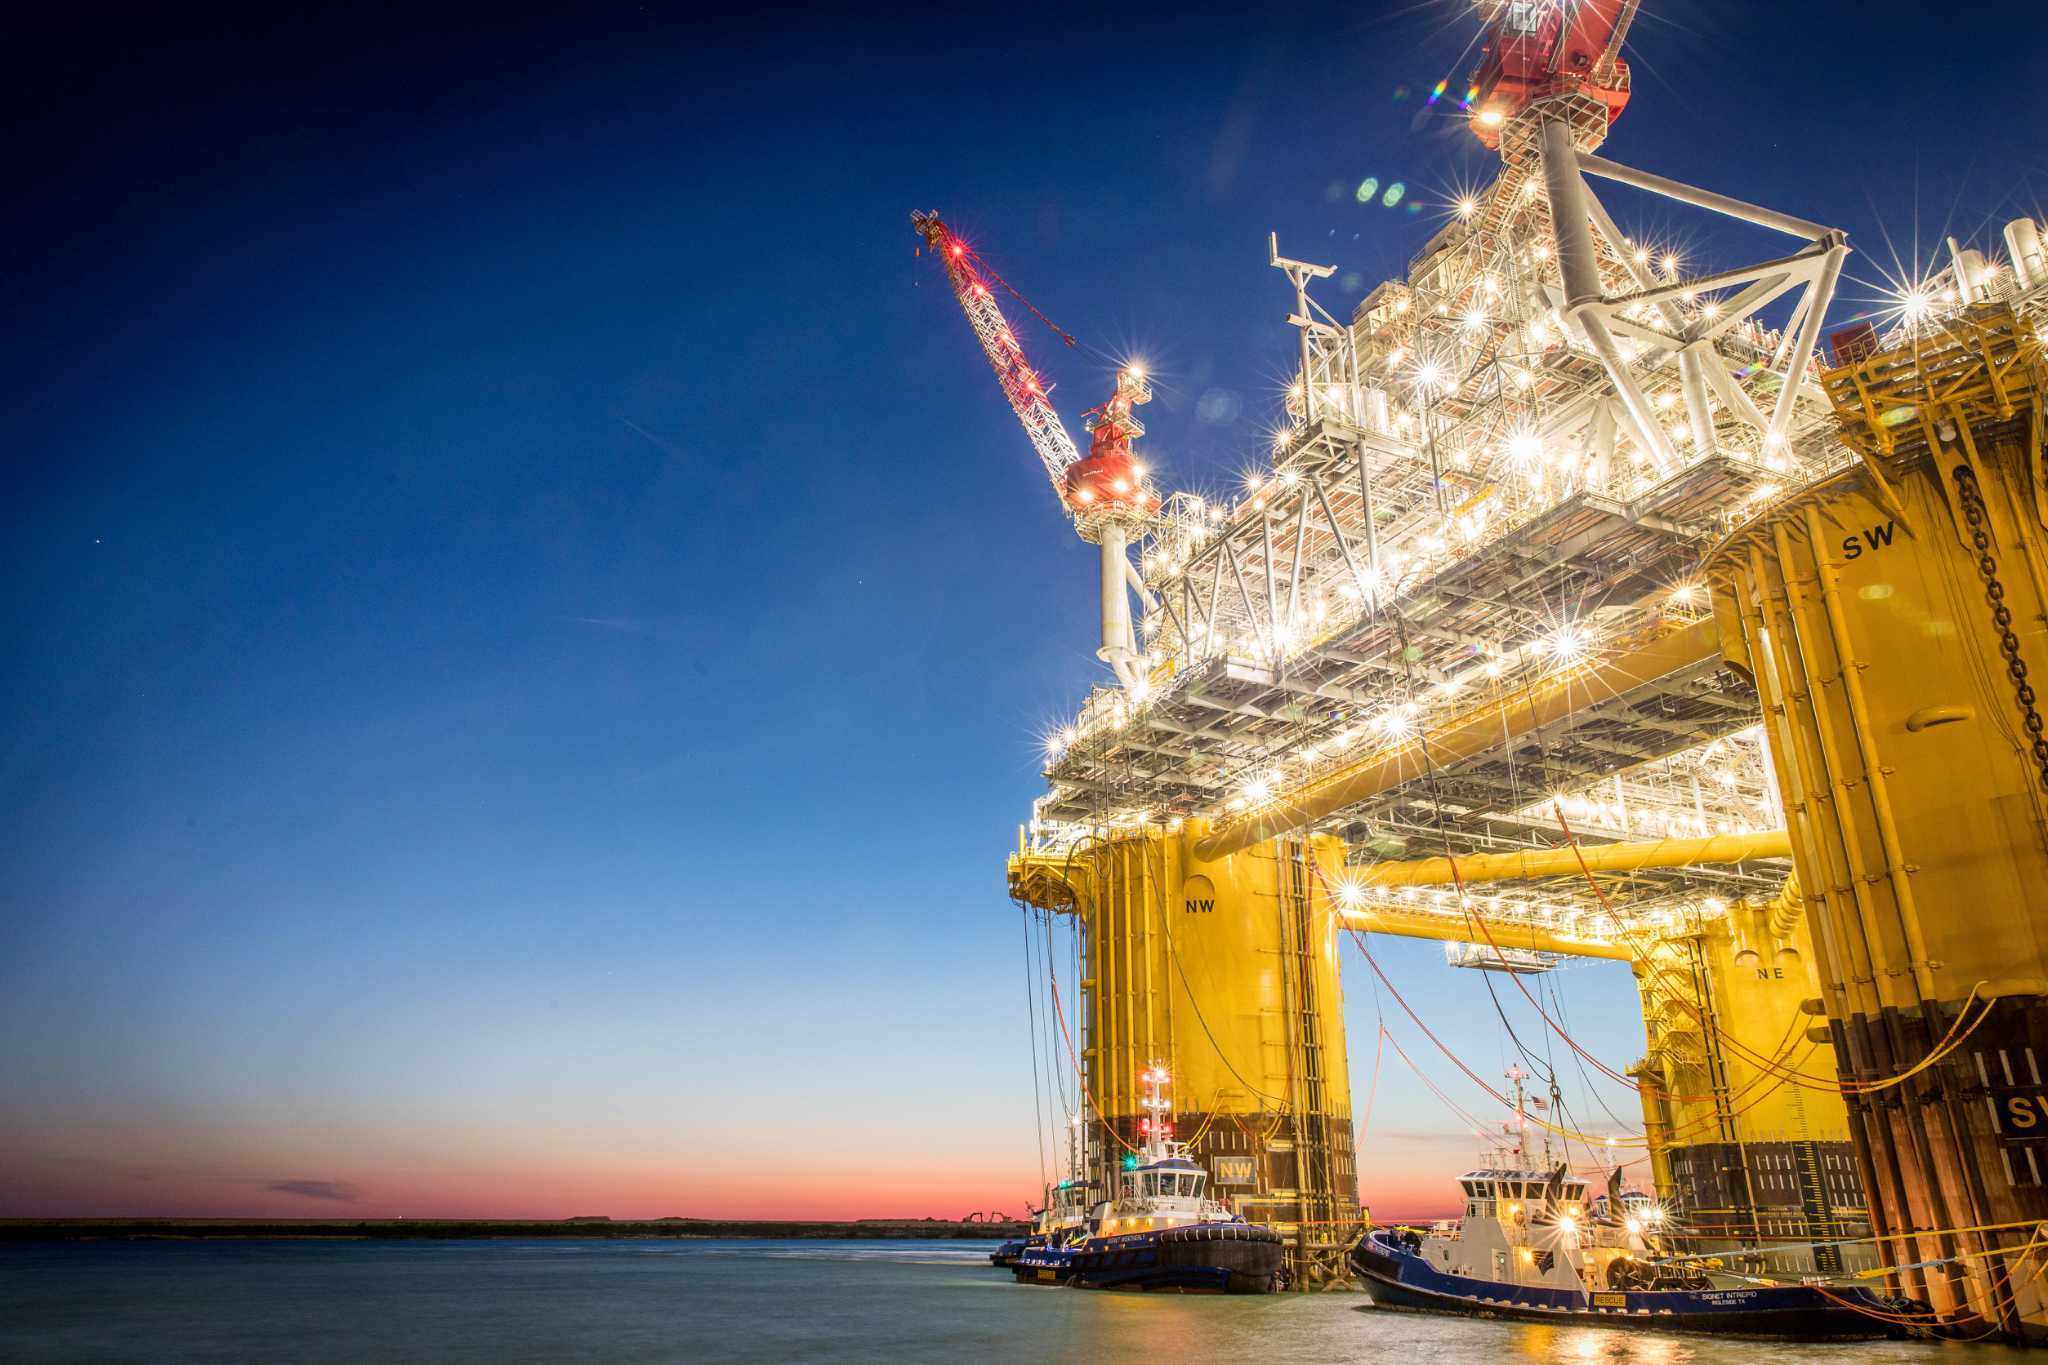 Record Gulf oil output to average 2 million barrels daily in 2020